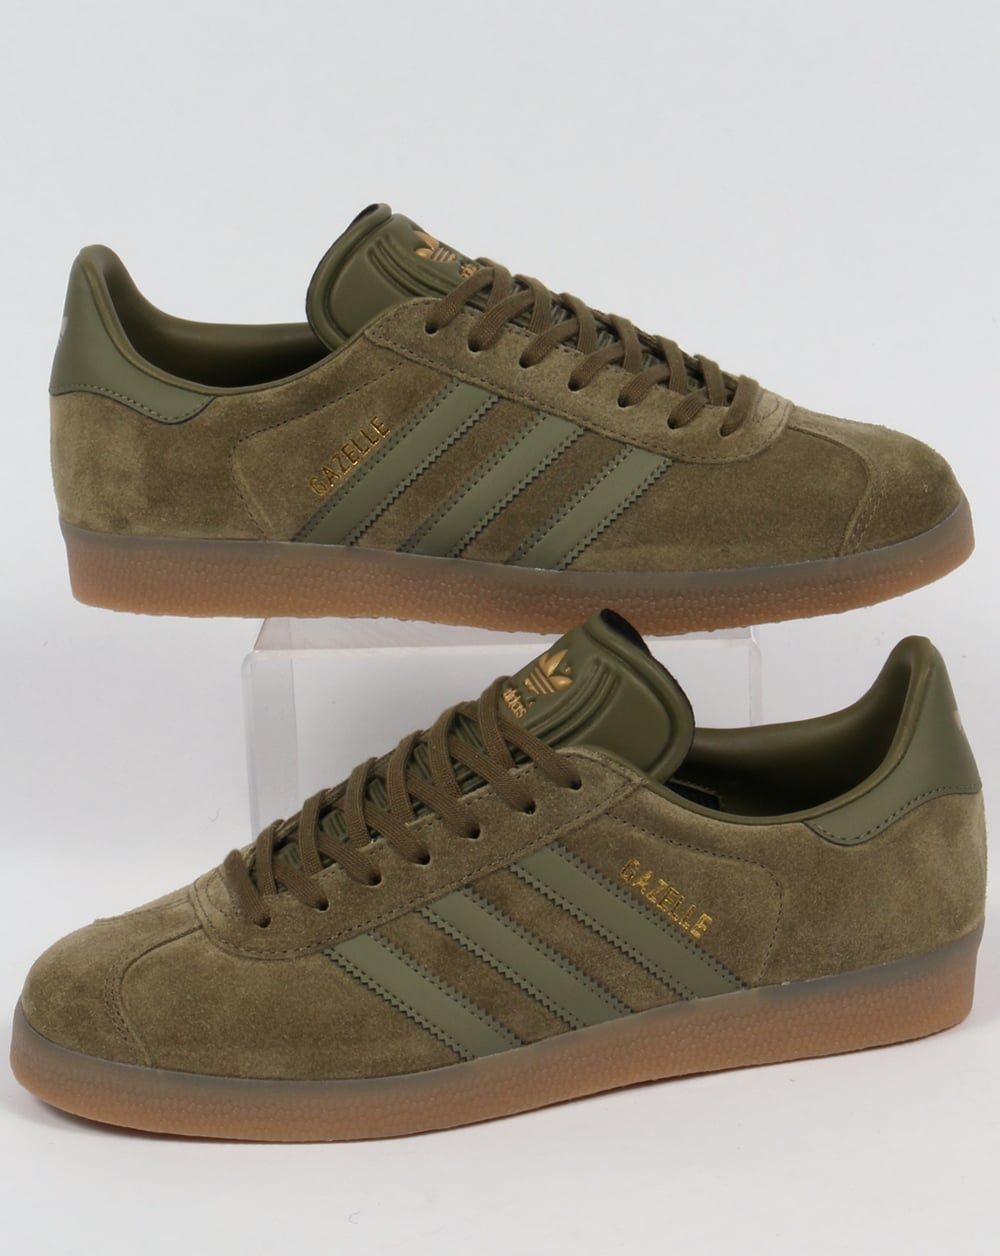 finest selection f8554 9418e adidas Trainers Adidas Gazelle Trainers OliveGum